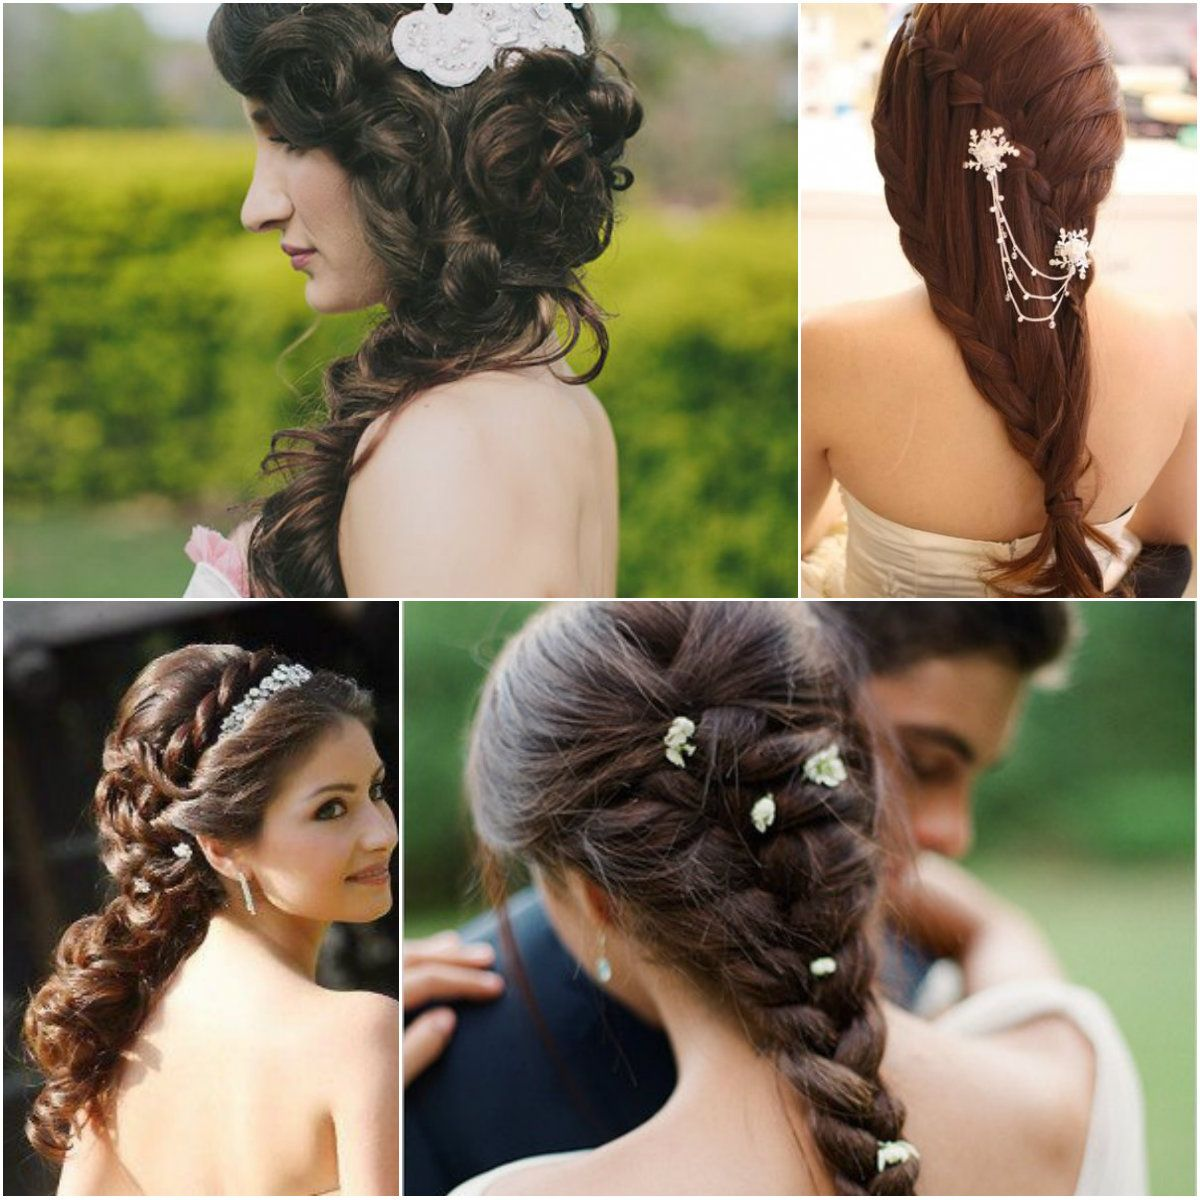 Braid Hairstyles For Wedding Party: Stylish #Braids Hairstyles For Black Women #bridesmaid